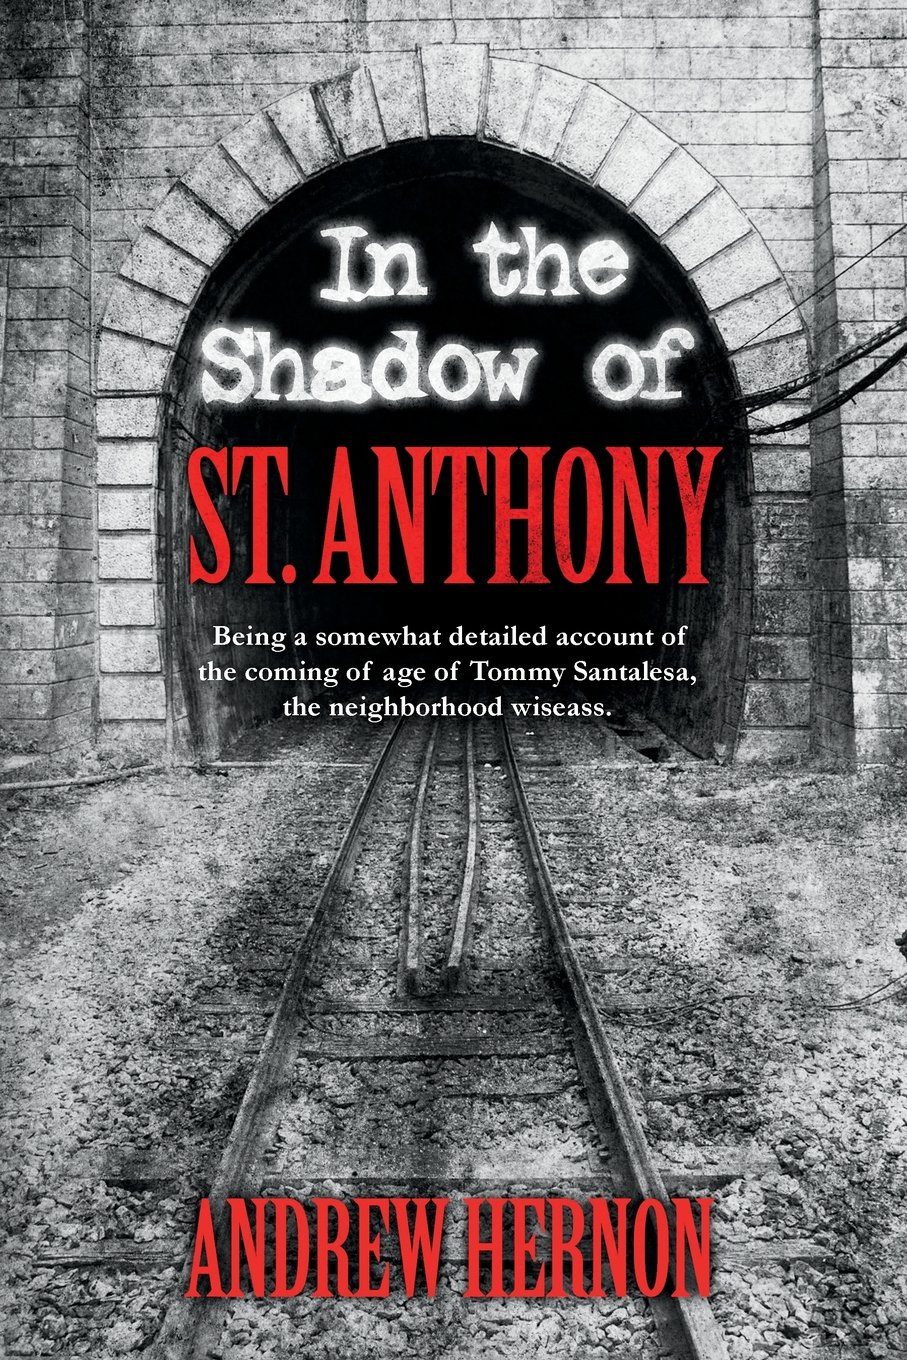 In the Shadow of St. Anthony: Being a somewhat detailed account of the coming of age of Tommy Santalesa, the neighborhood wiseass by Andrew Hernon